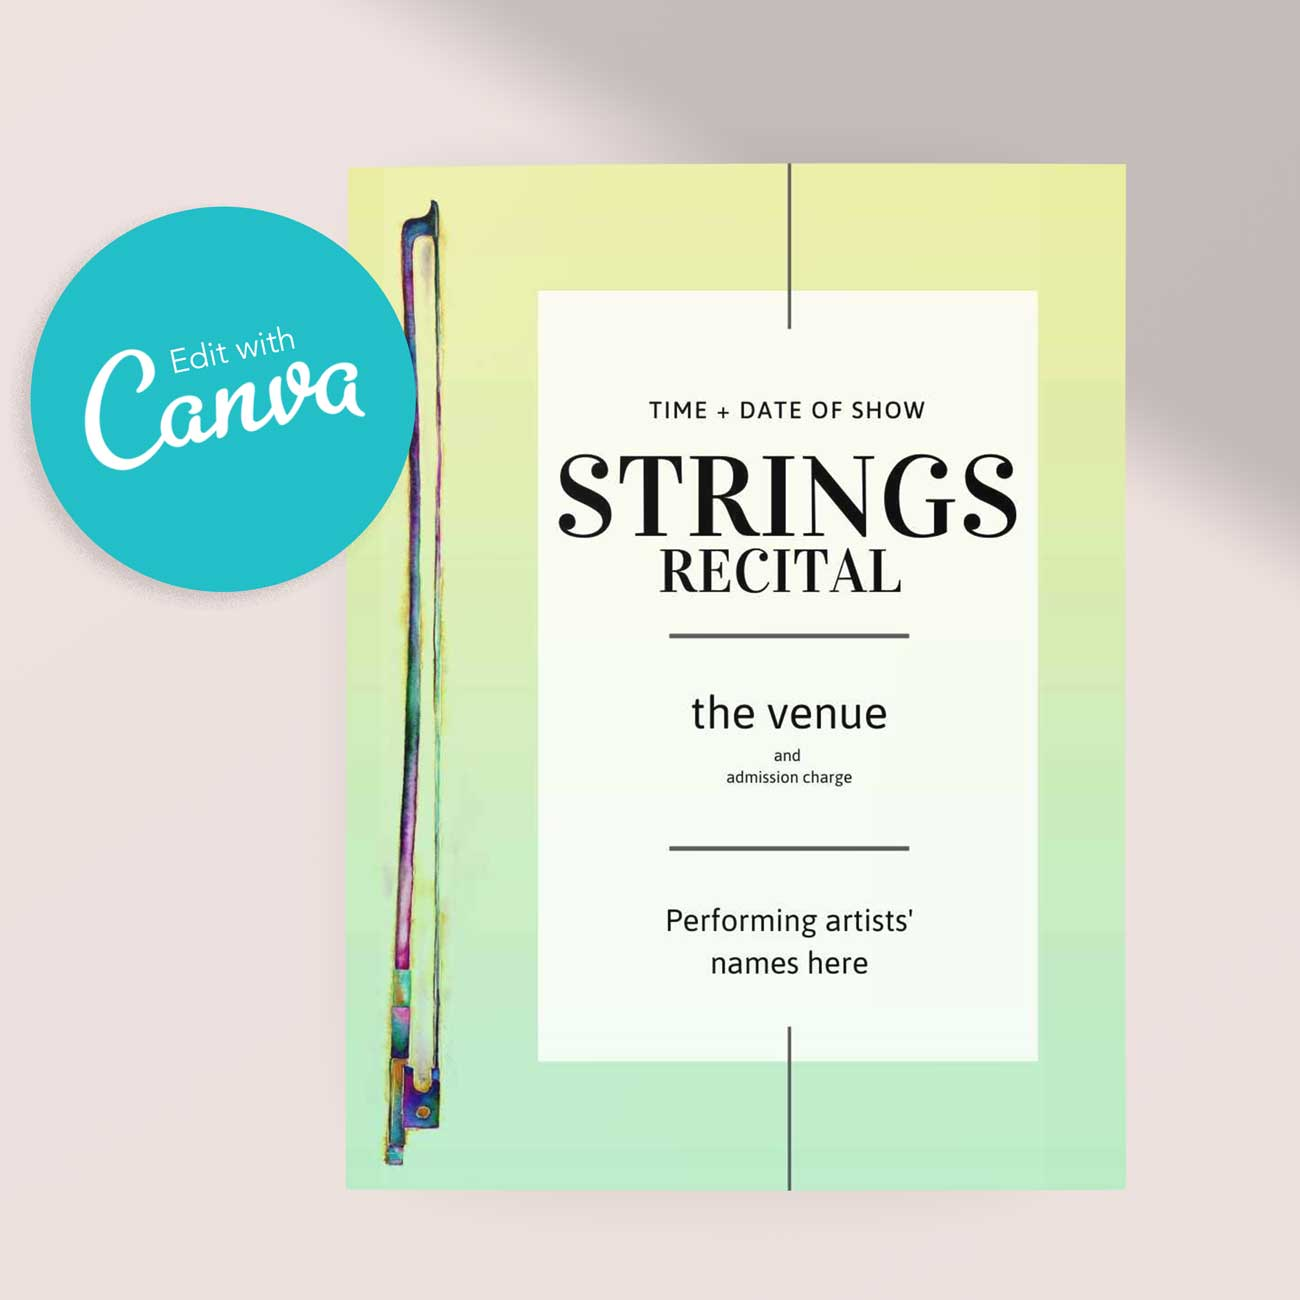 Strings Violin Bow Recital or Concert Poster | Editable Canva Template